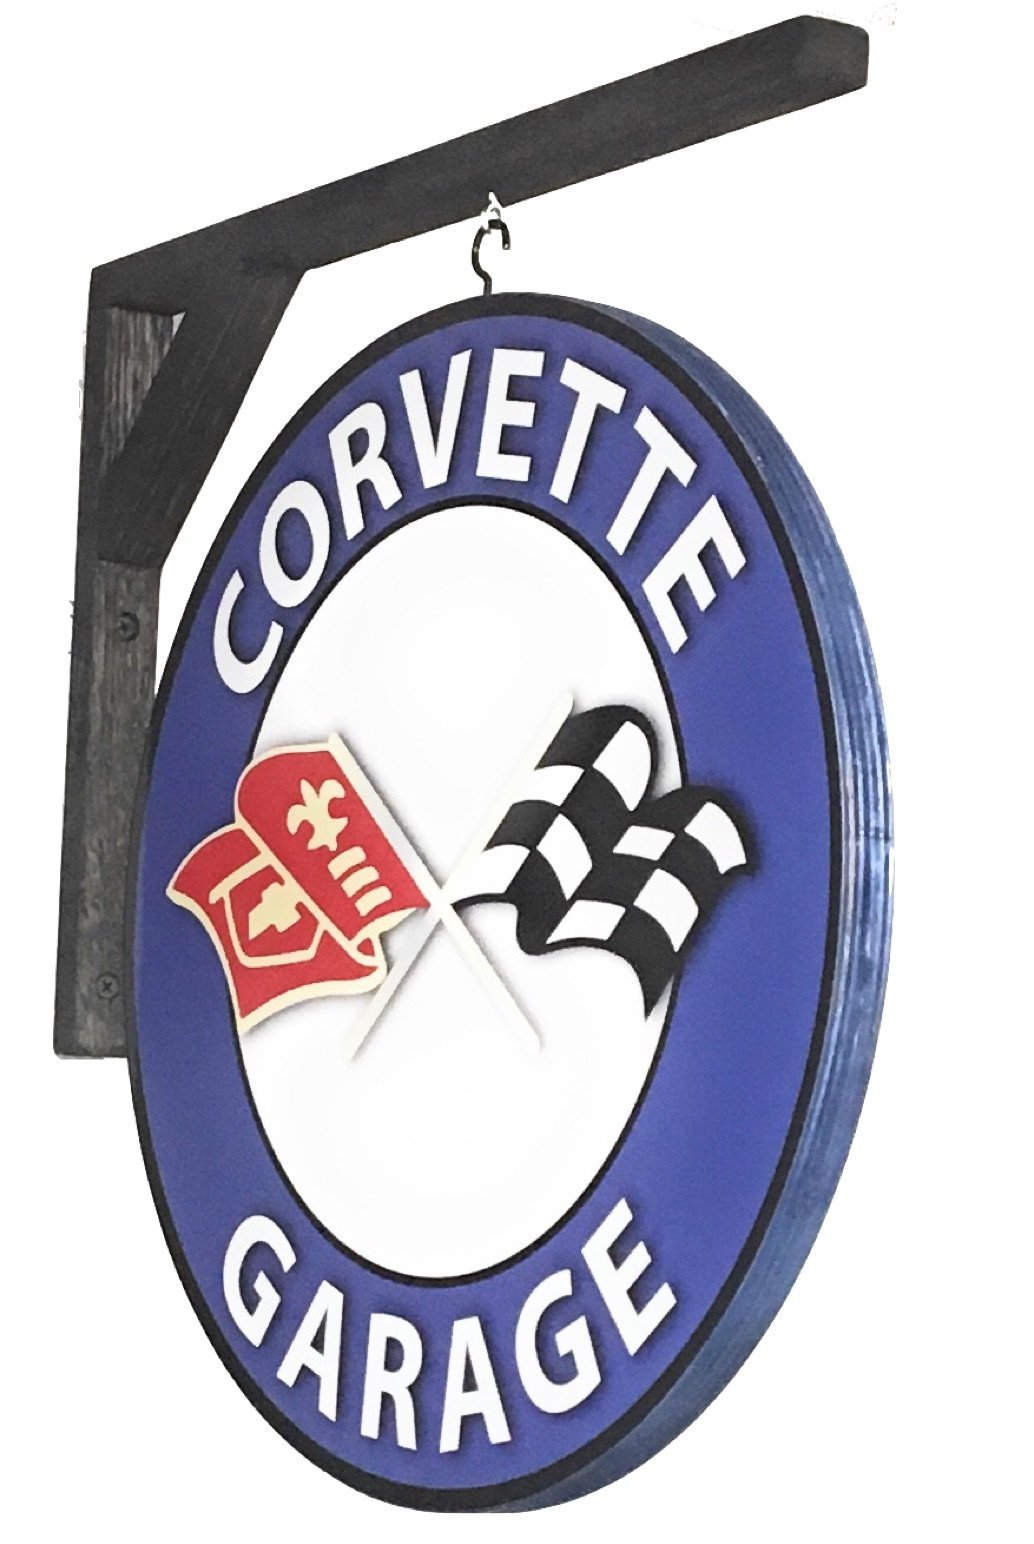 Corvette Garage Sign - Vintage Design - Double Sided Wall Sign - 15 inch Diameter - Includes Wall Hanging Bracket by Corvette Vintage